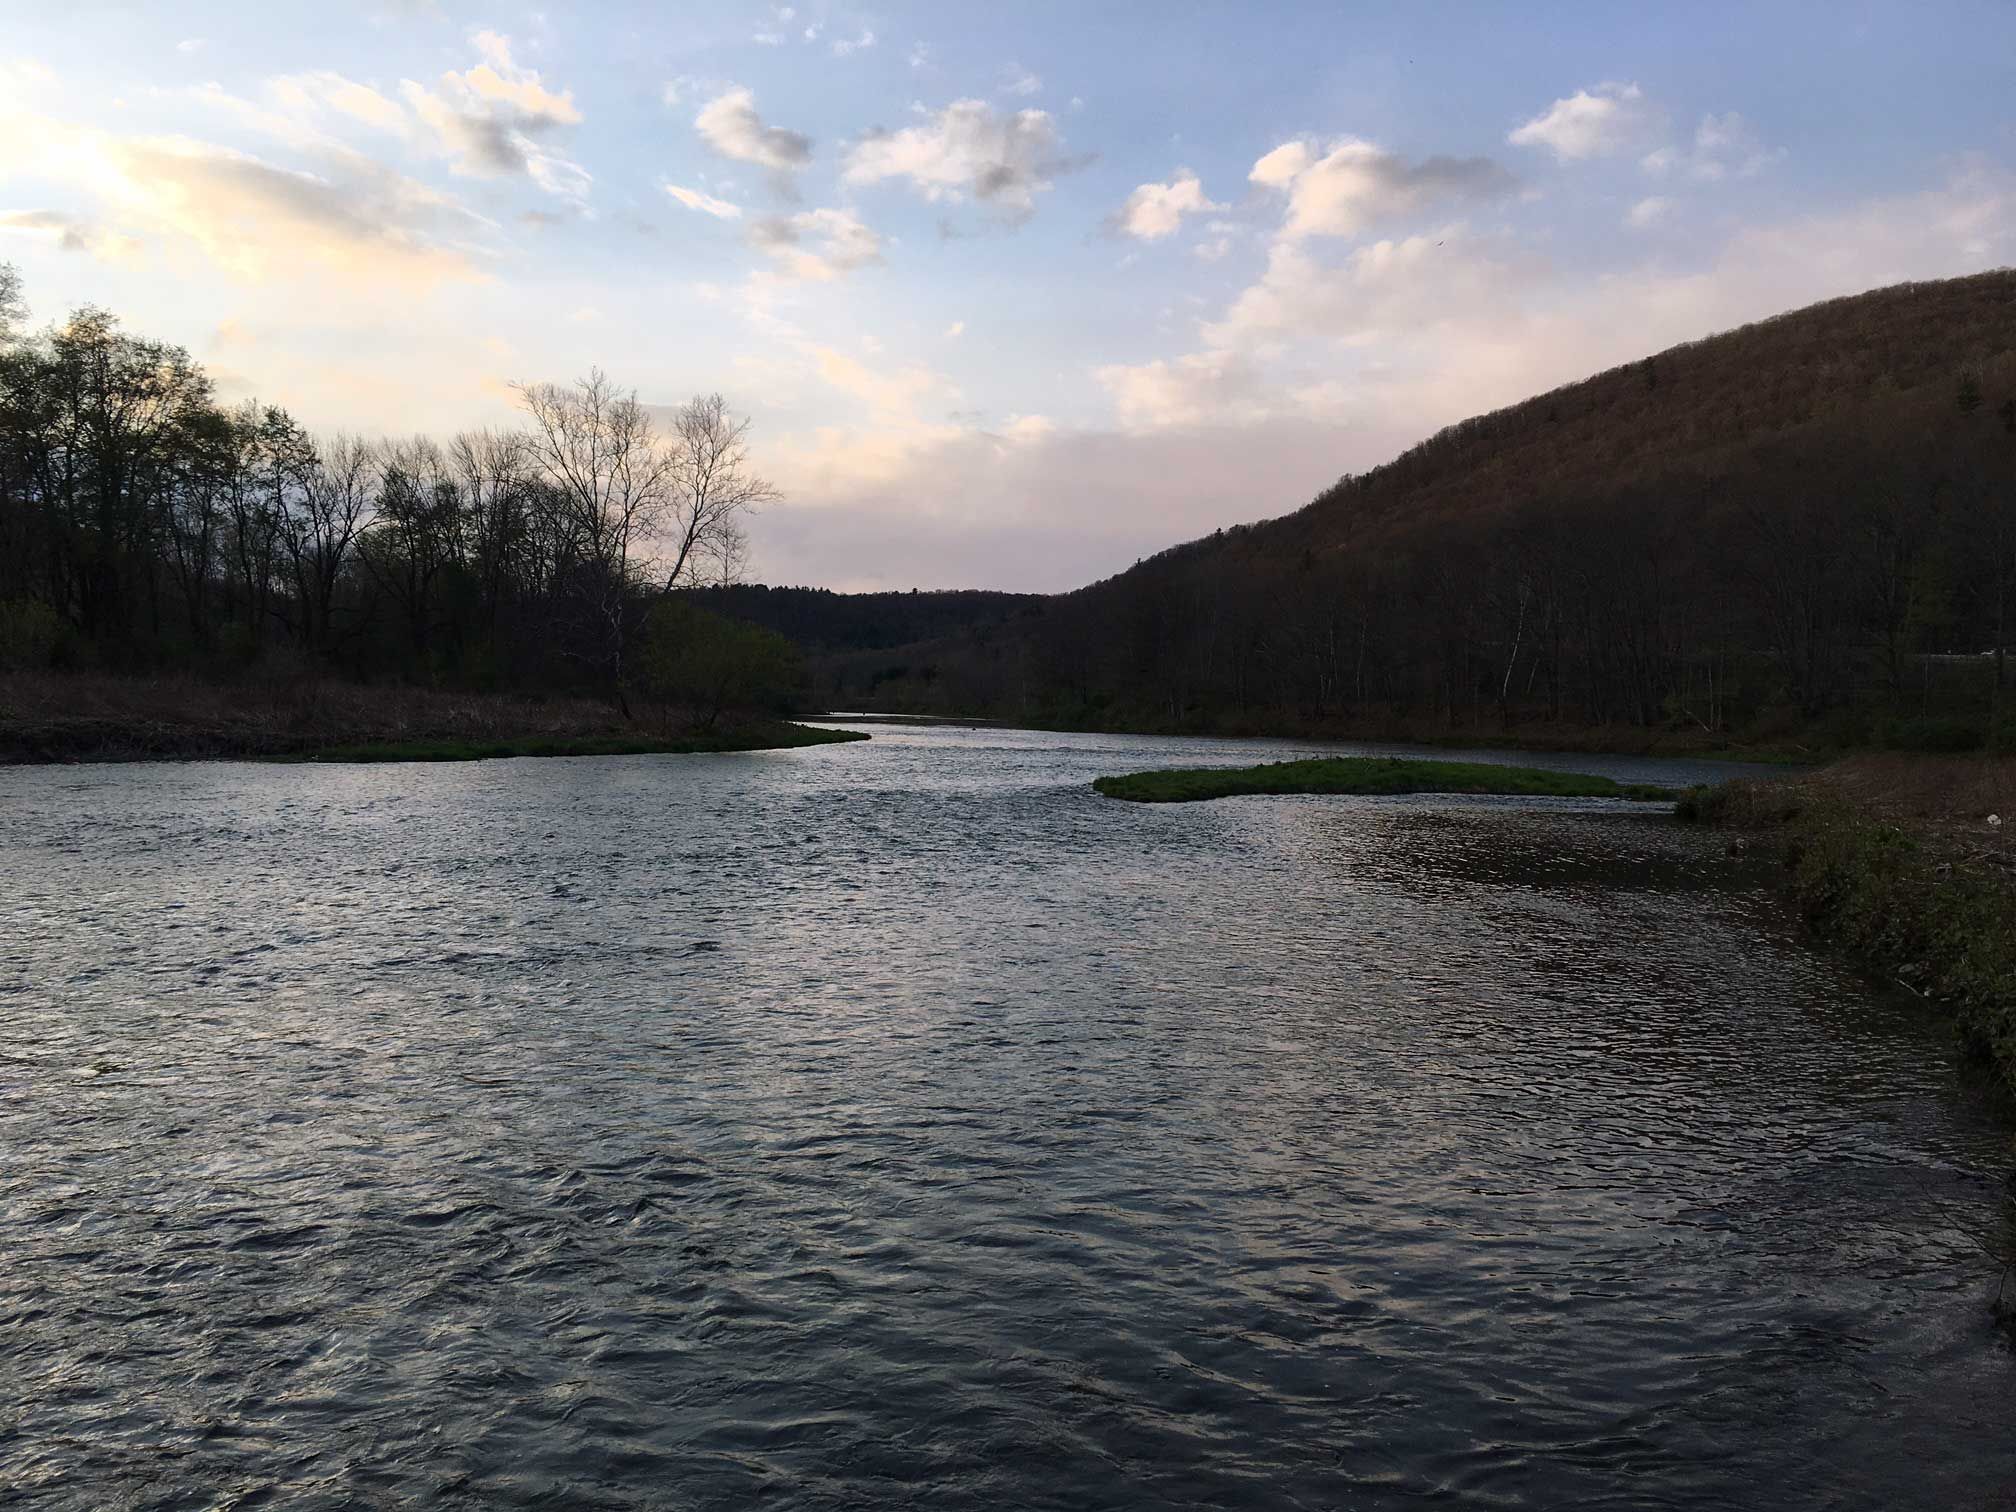 The West Branch of the Delaware River at sunset.